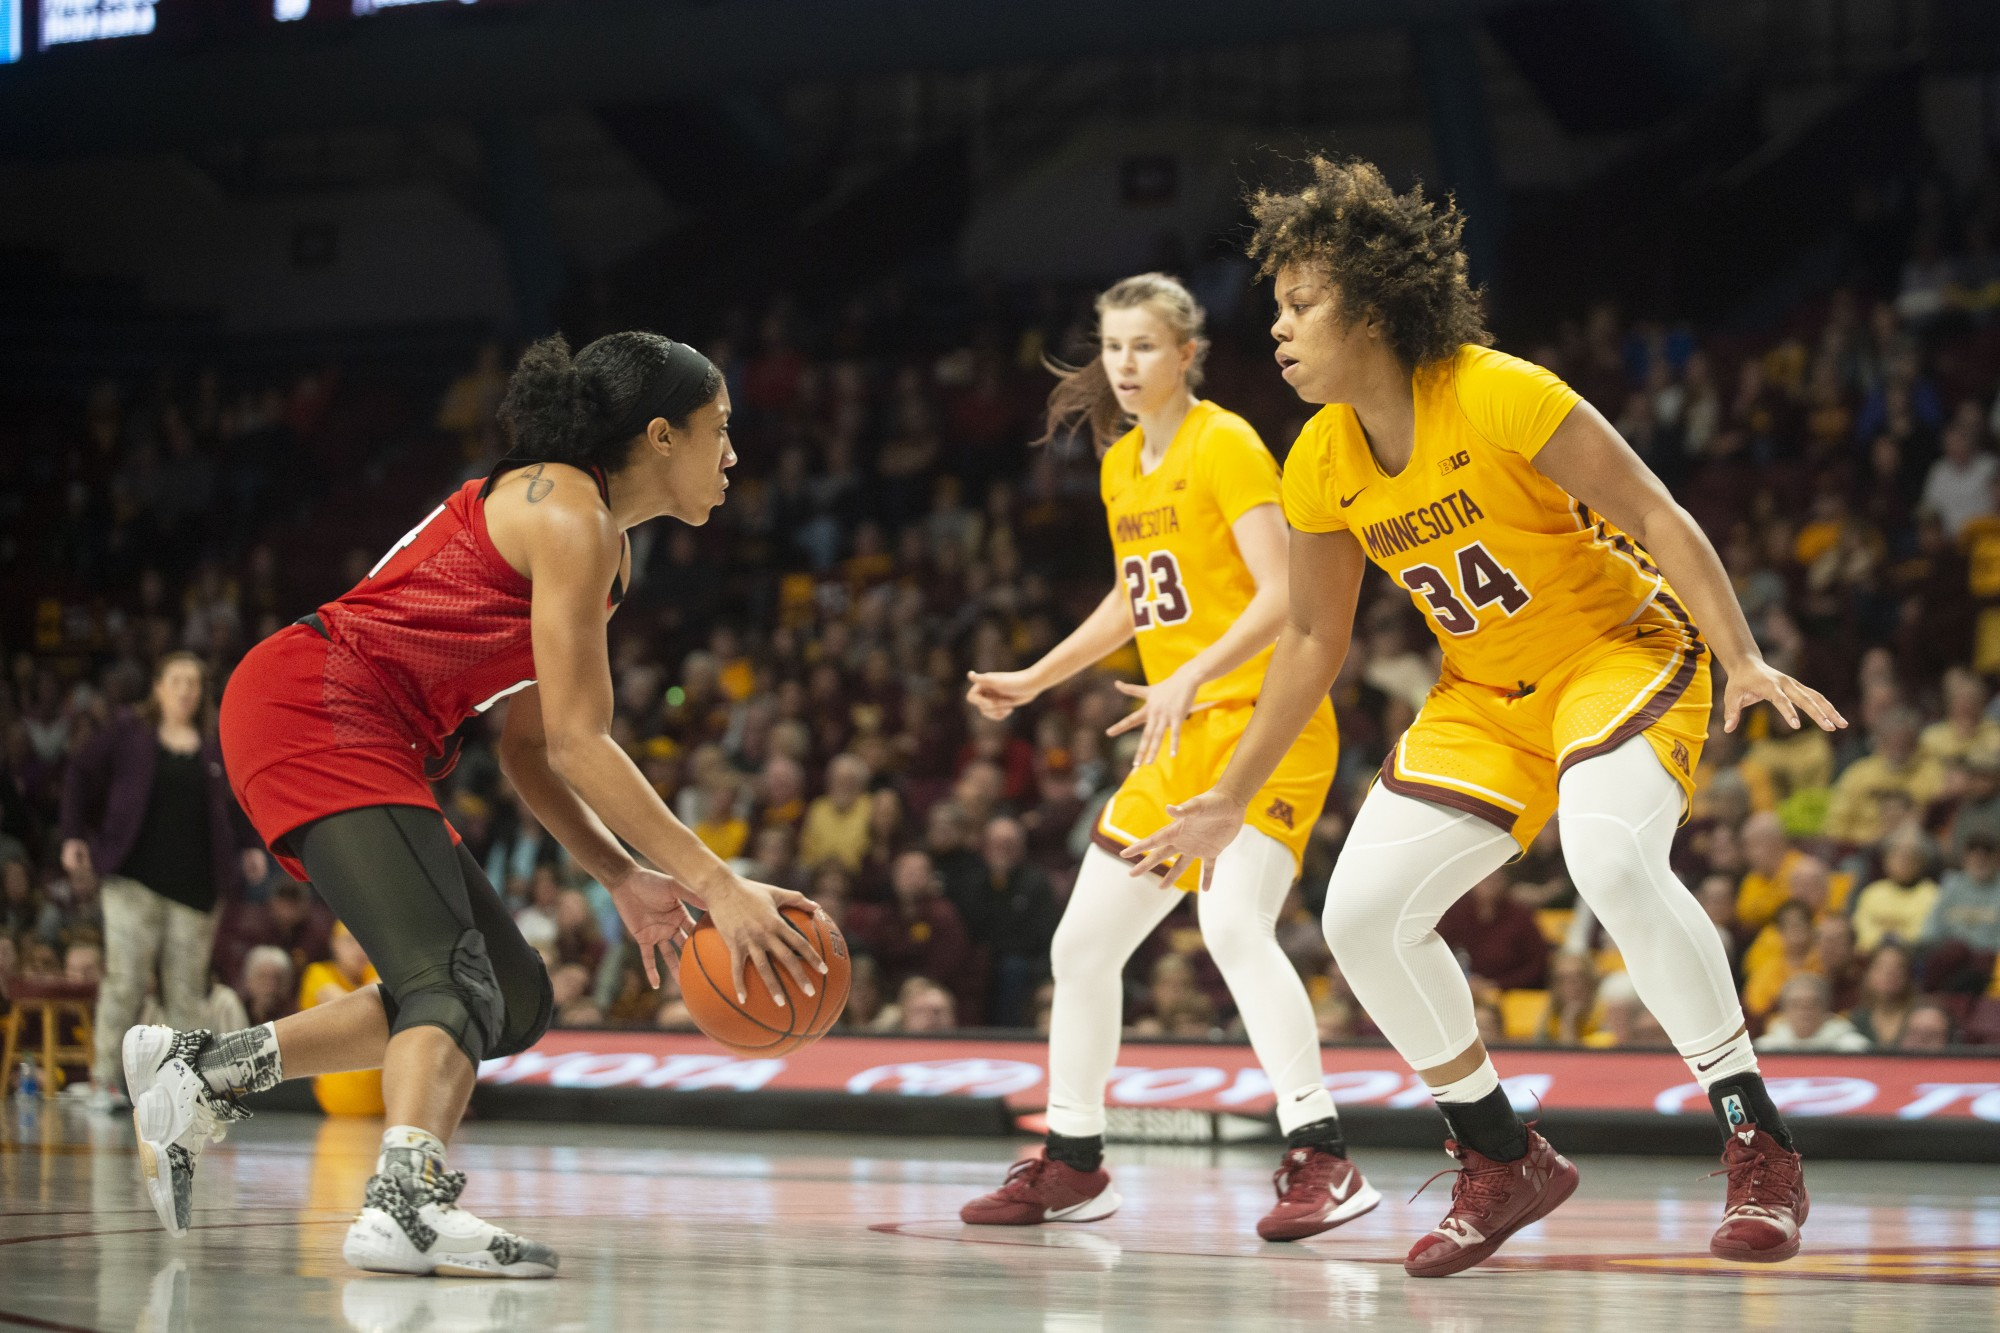 Guard Gadiva Hubbard squares up on defense at Williams Arena on Sunday, Feb. 2. The Gophers won in overtime 73-71.